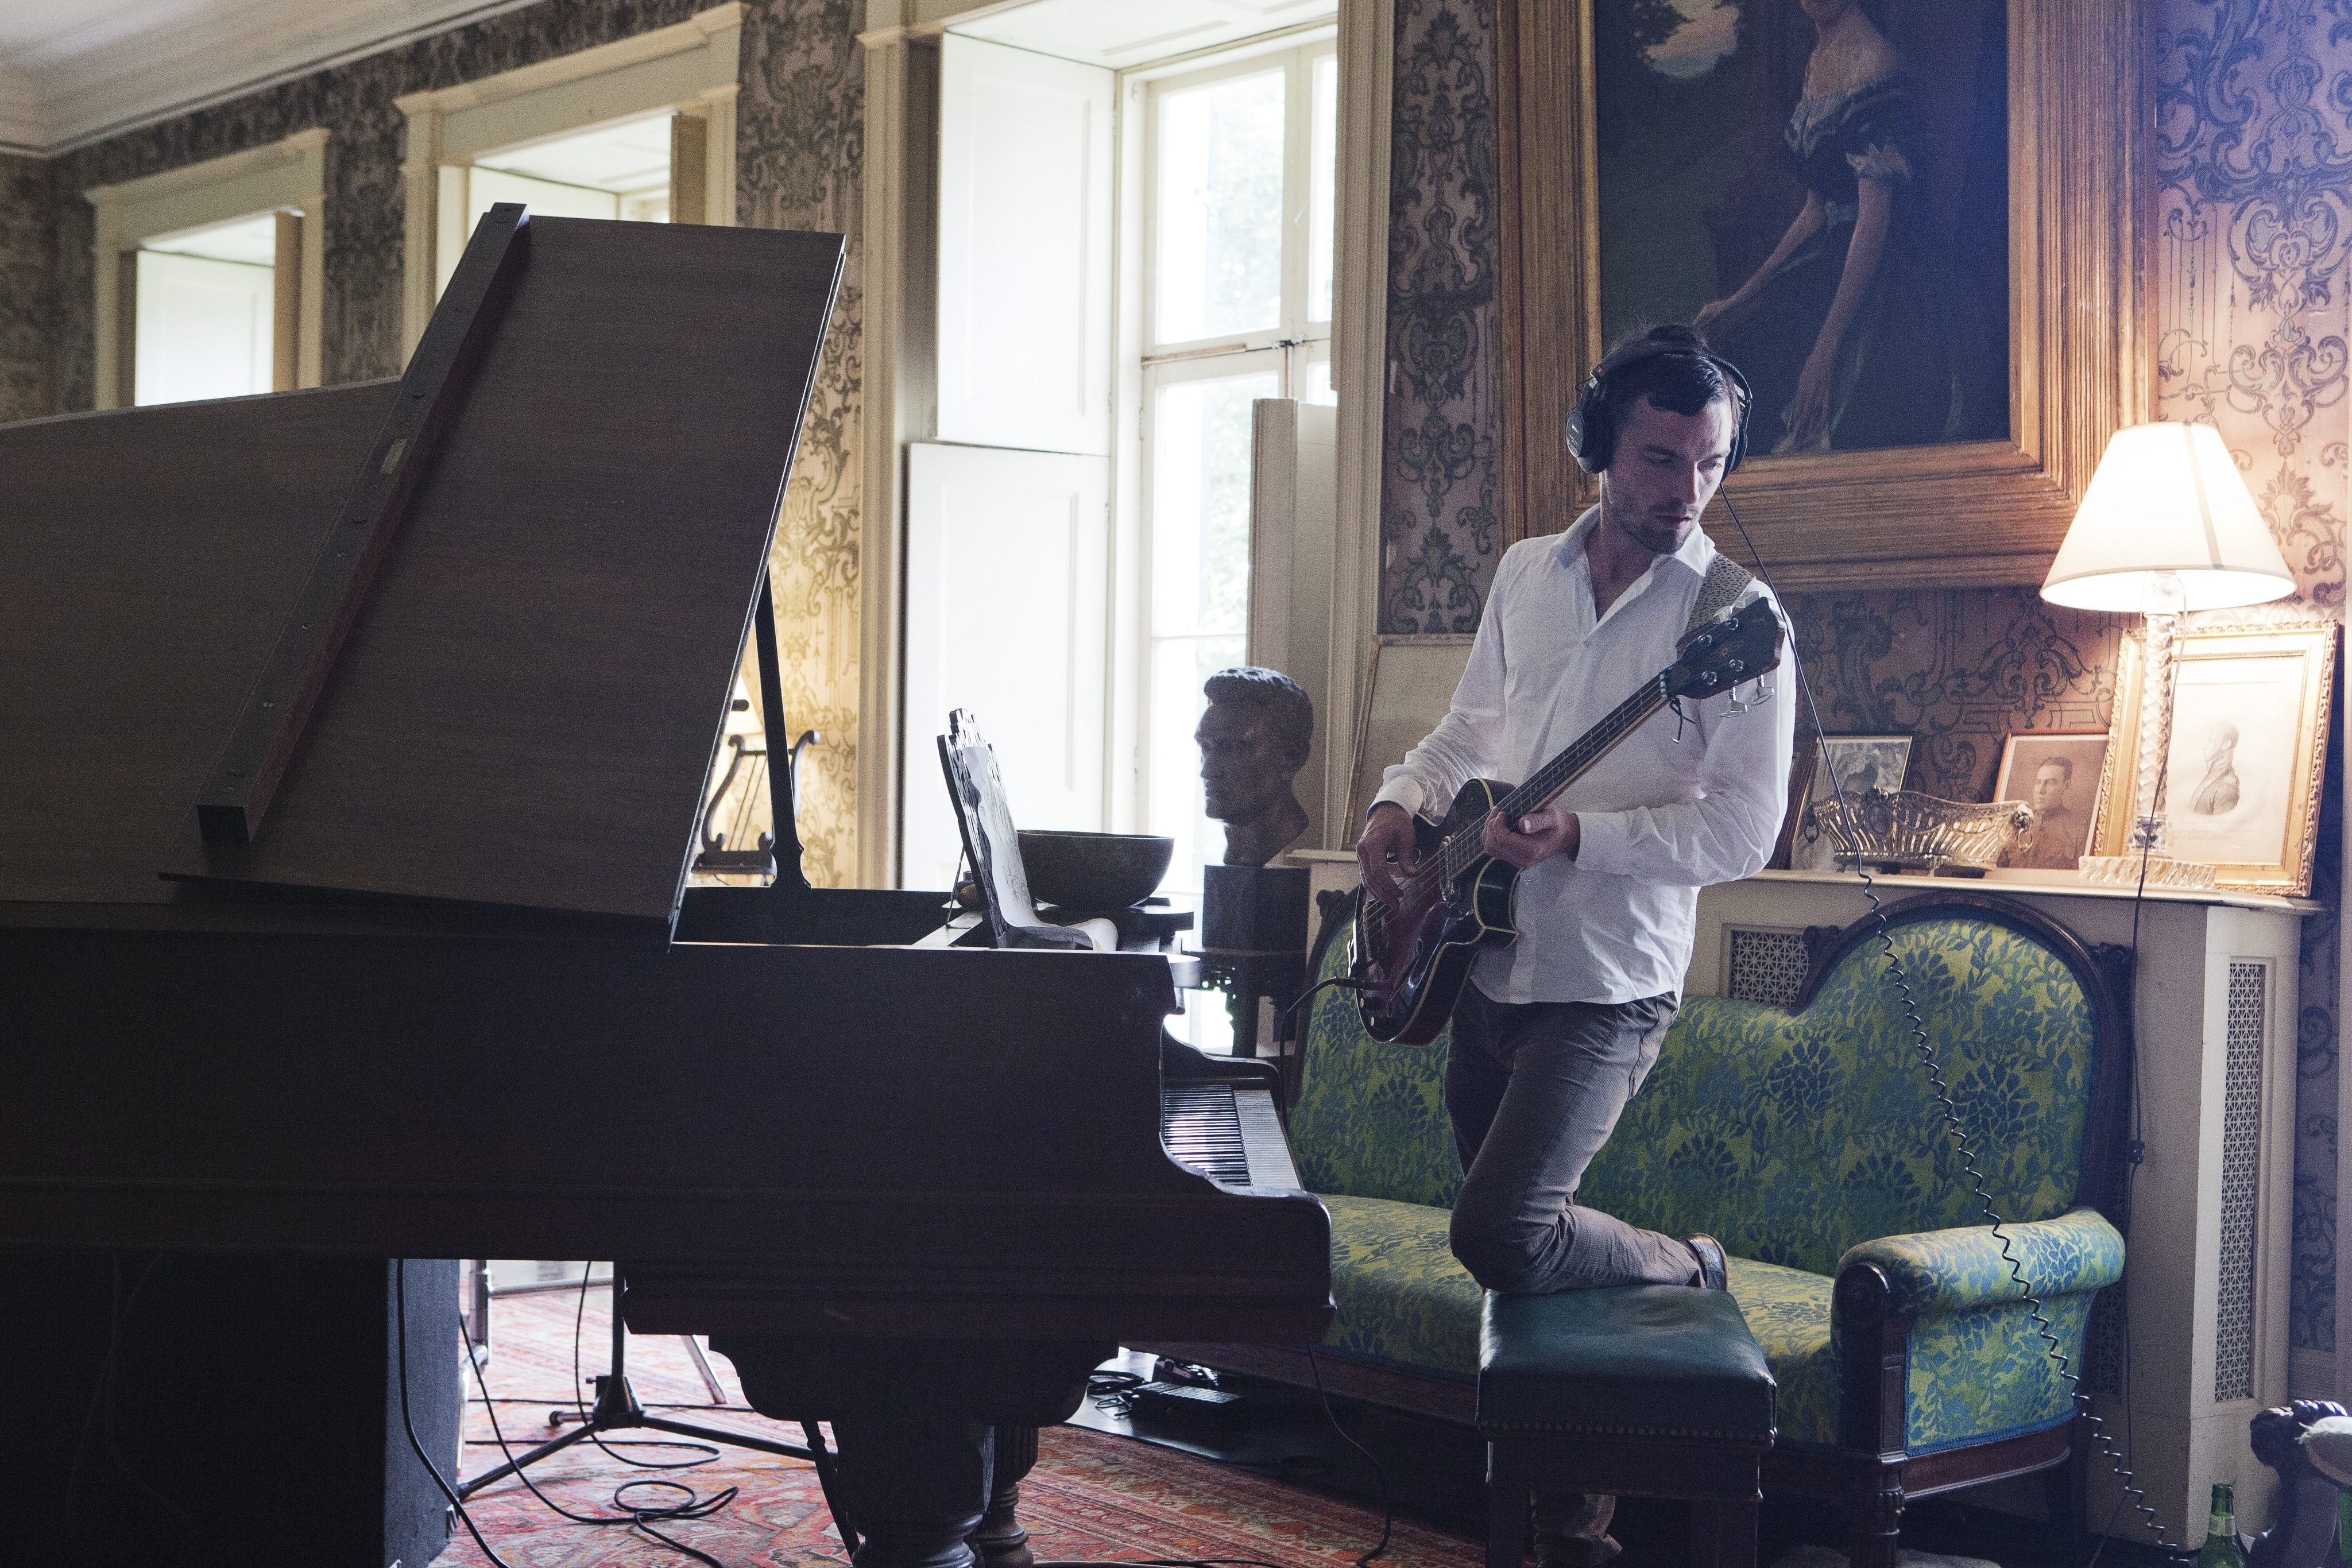 """A scene from Ragnar Kjartansson's nine-channel video installation """"The Visitors,"""" on view through May 15 in the University at Buffalo Art Gallery."""